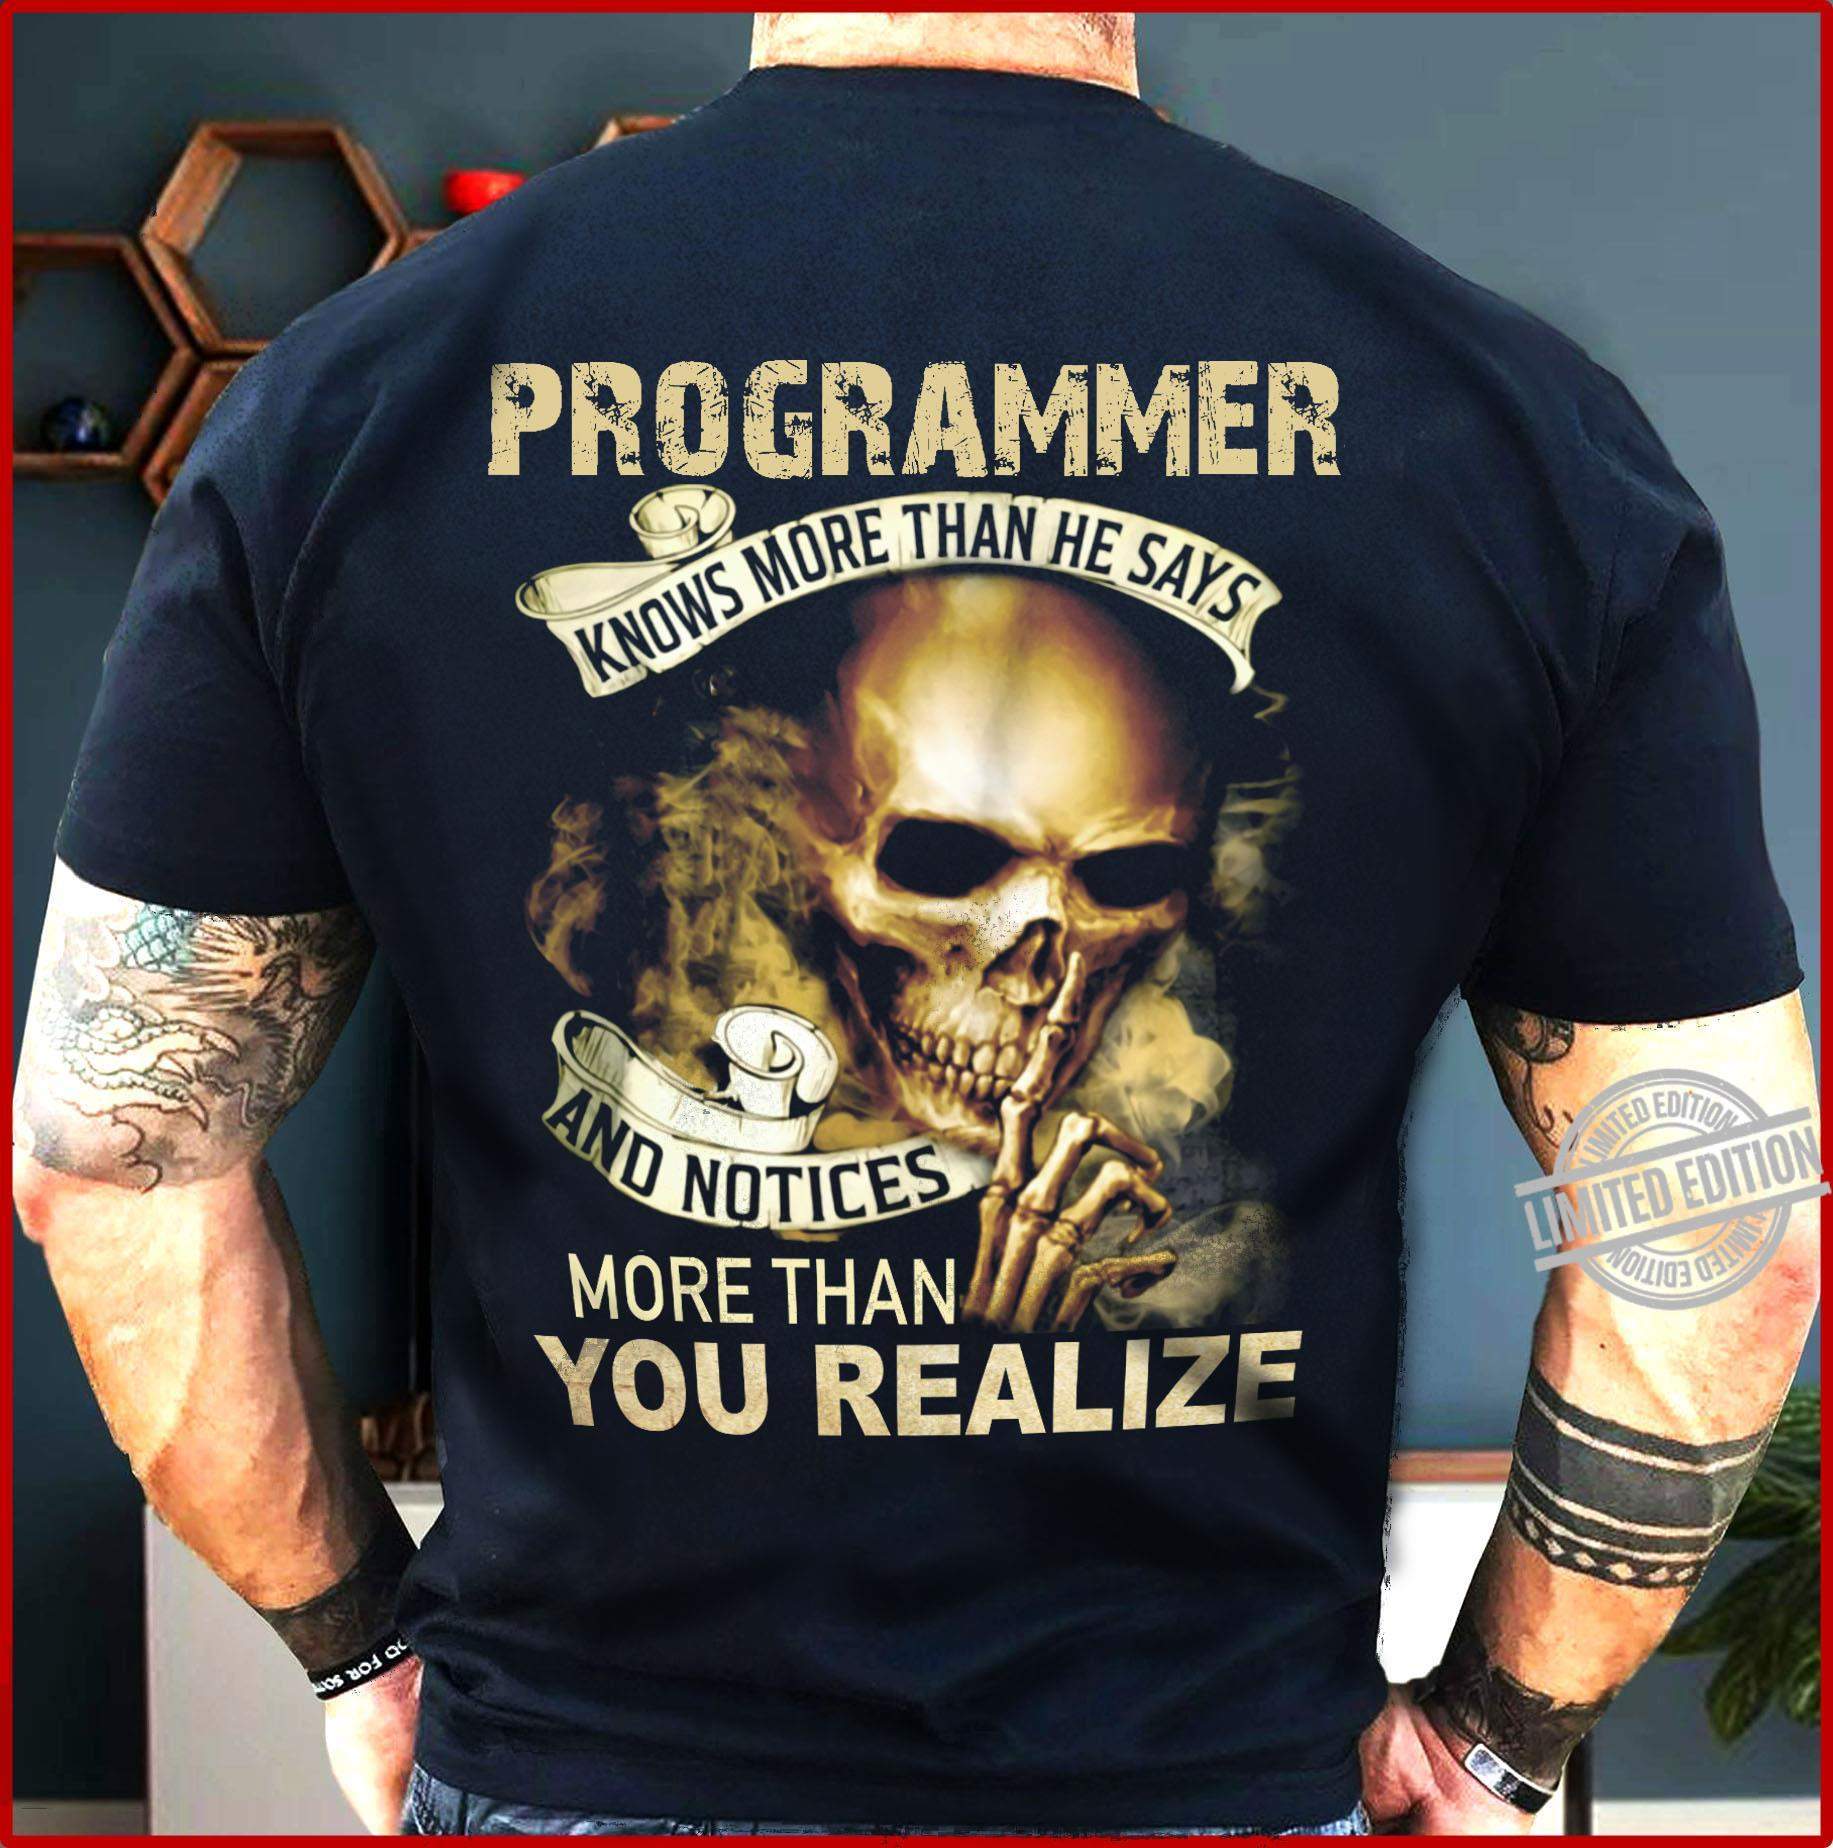 Programmer Knows More Than He Says And Notices More Than You Realize Shirt